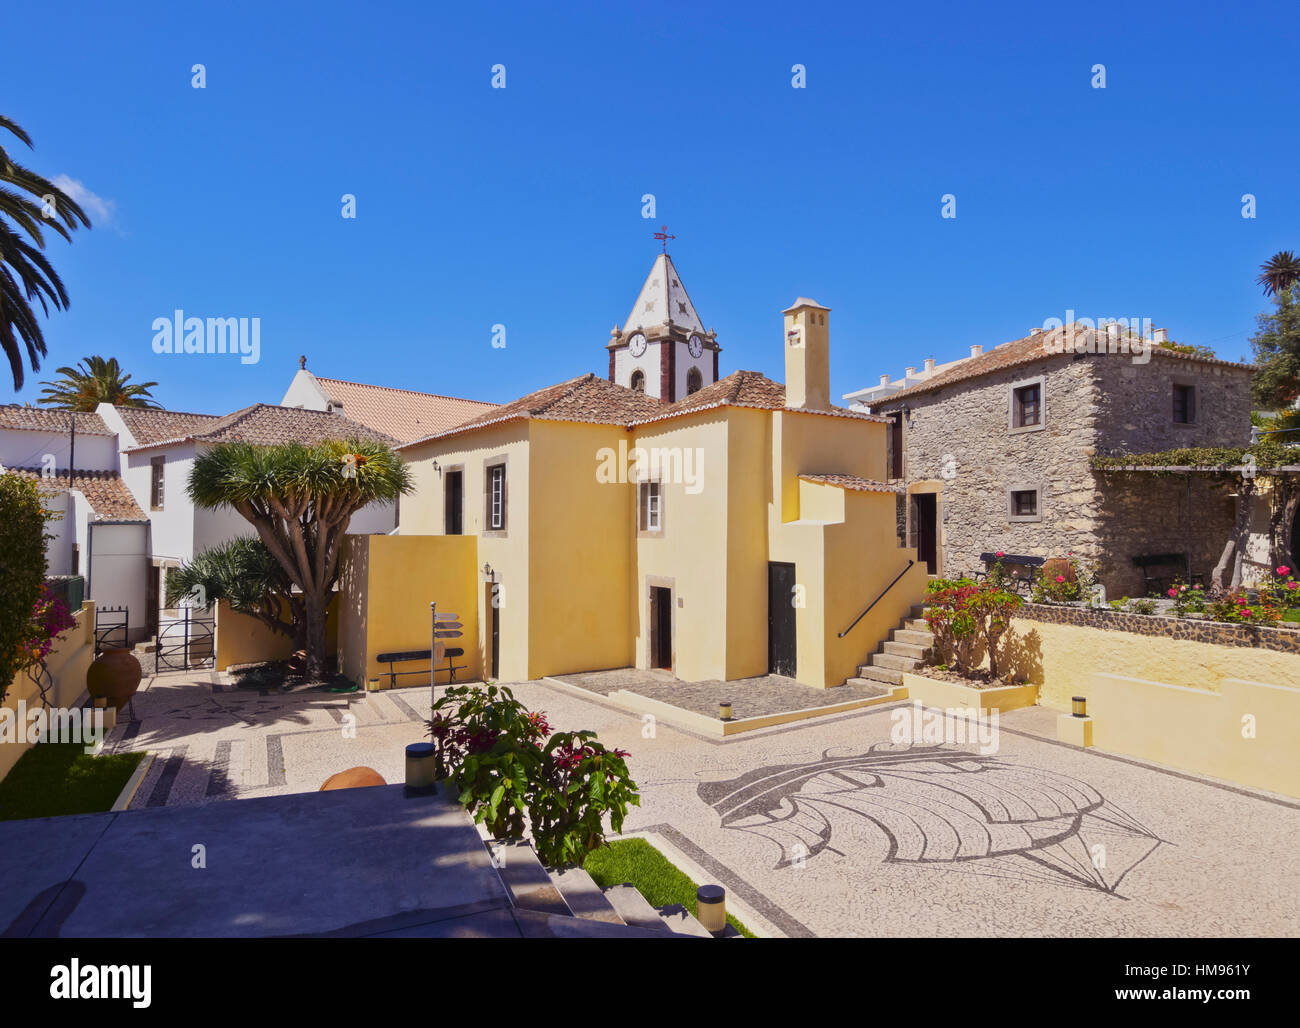 View of the Casa de Cristovao Colombo Museum and the Church tower, Vila Baleira, Porto Santo, Madeira Islands, Portugal - Stock Image